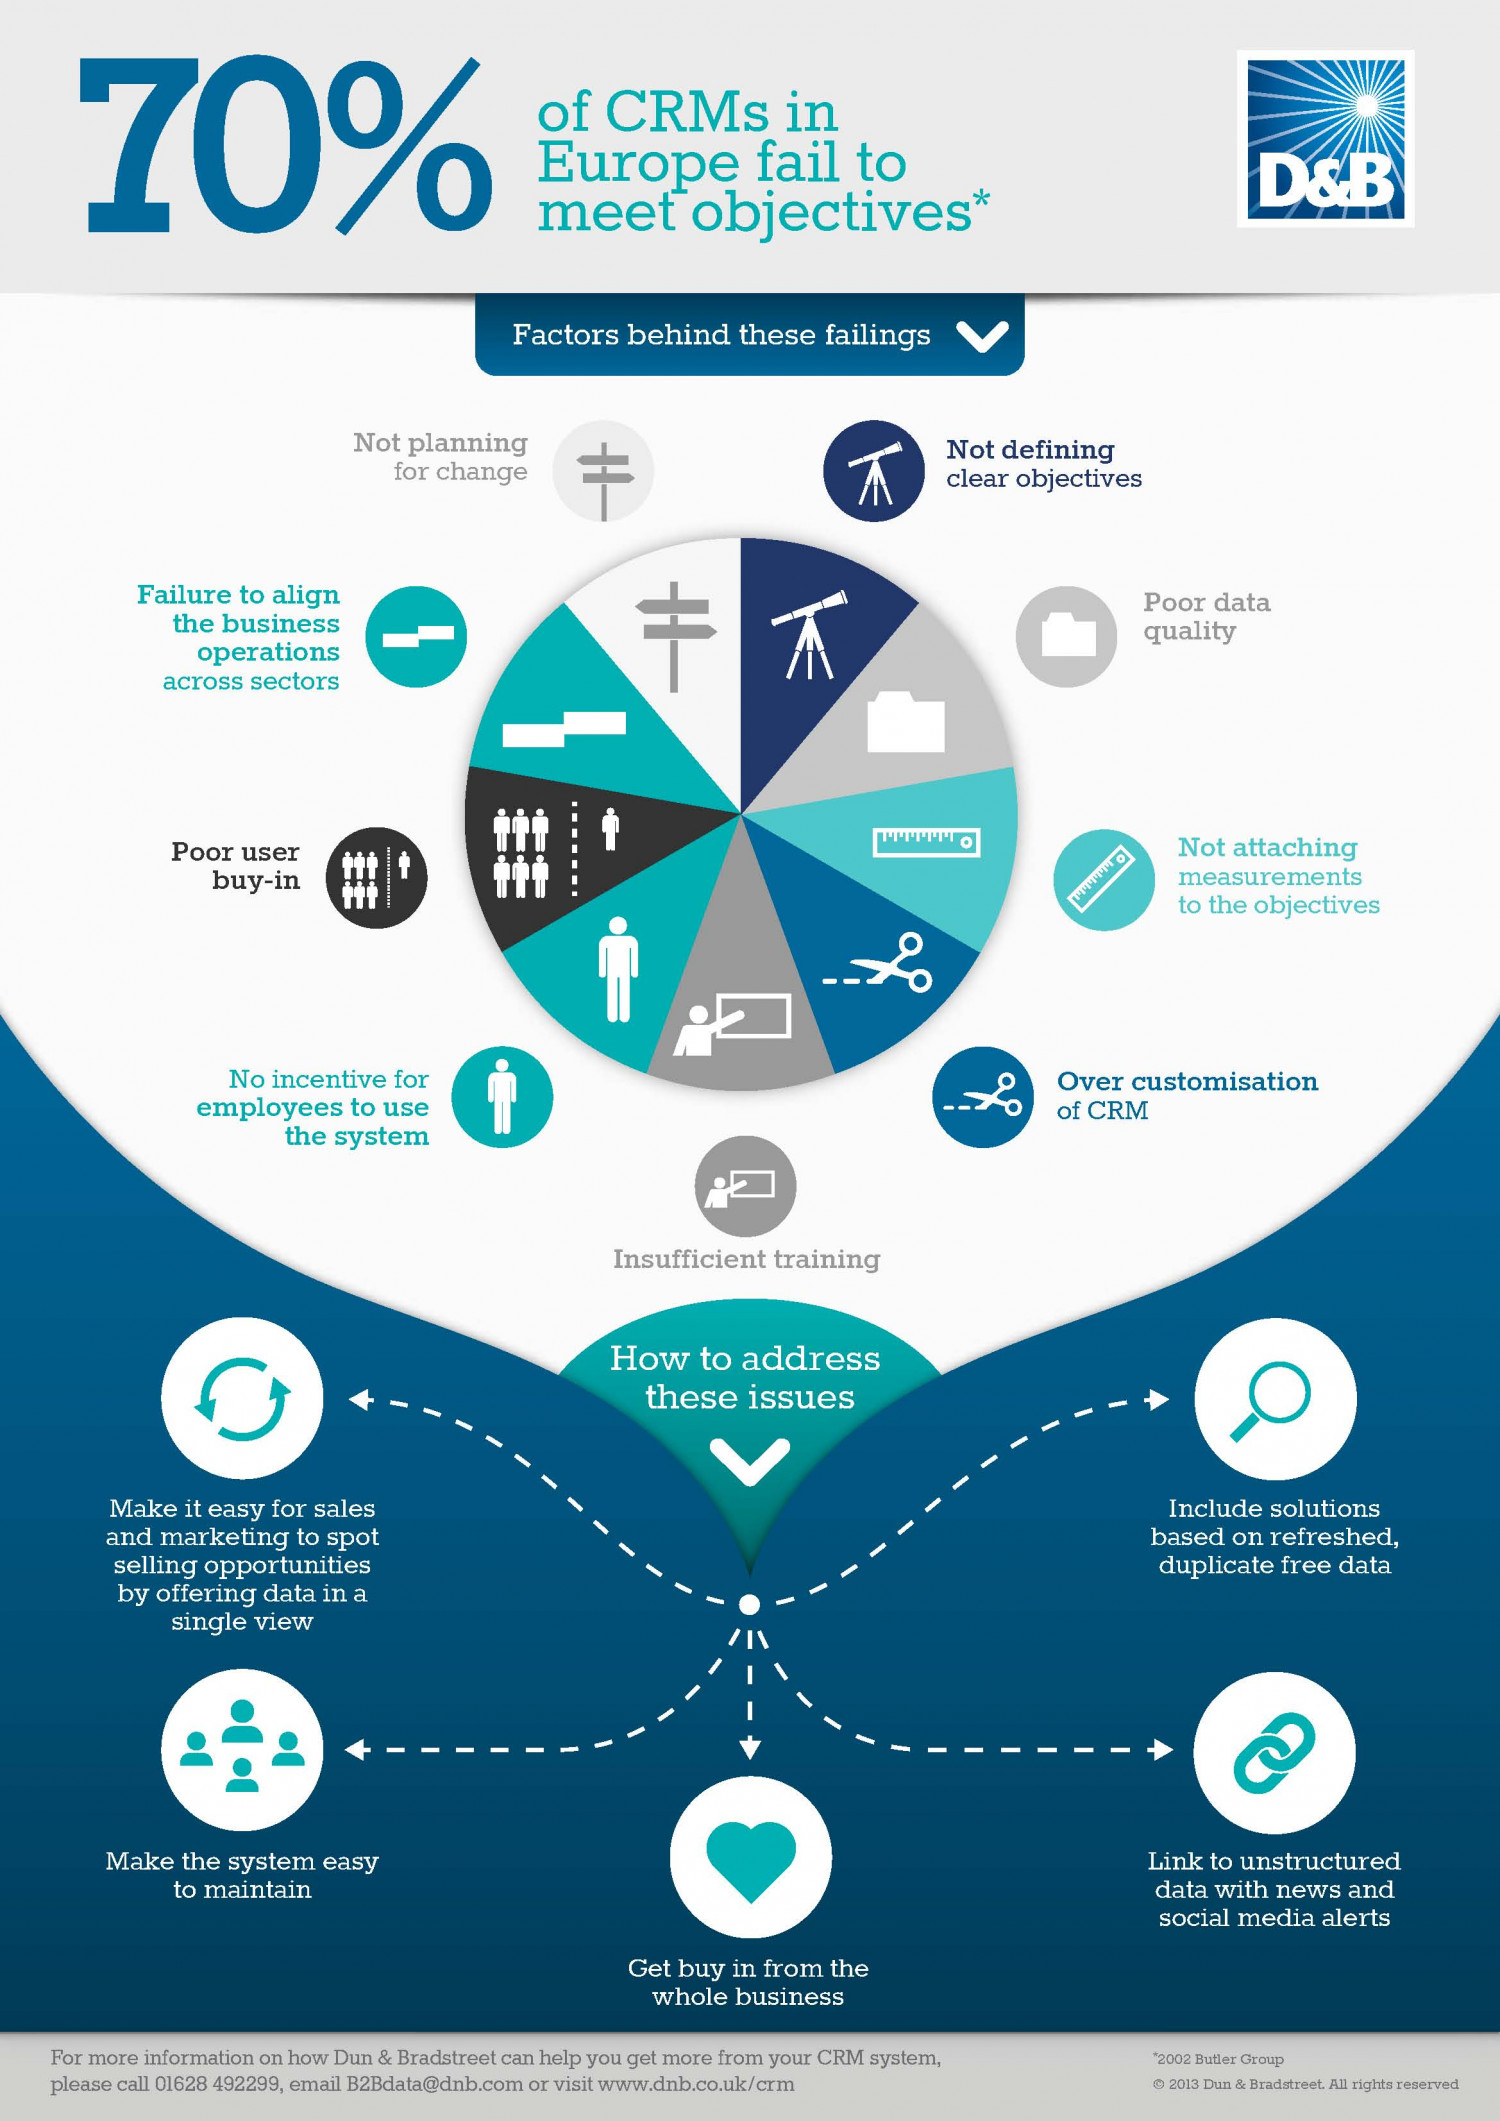 CRM Failures - 70% of businesses have failing CRMs Infographic